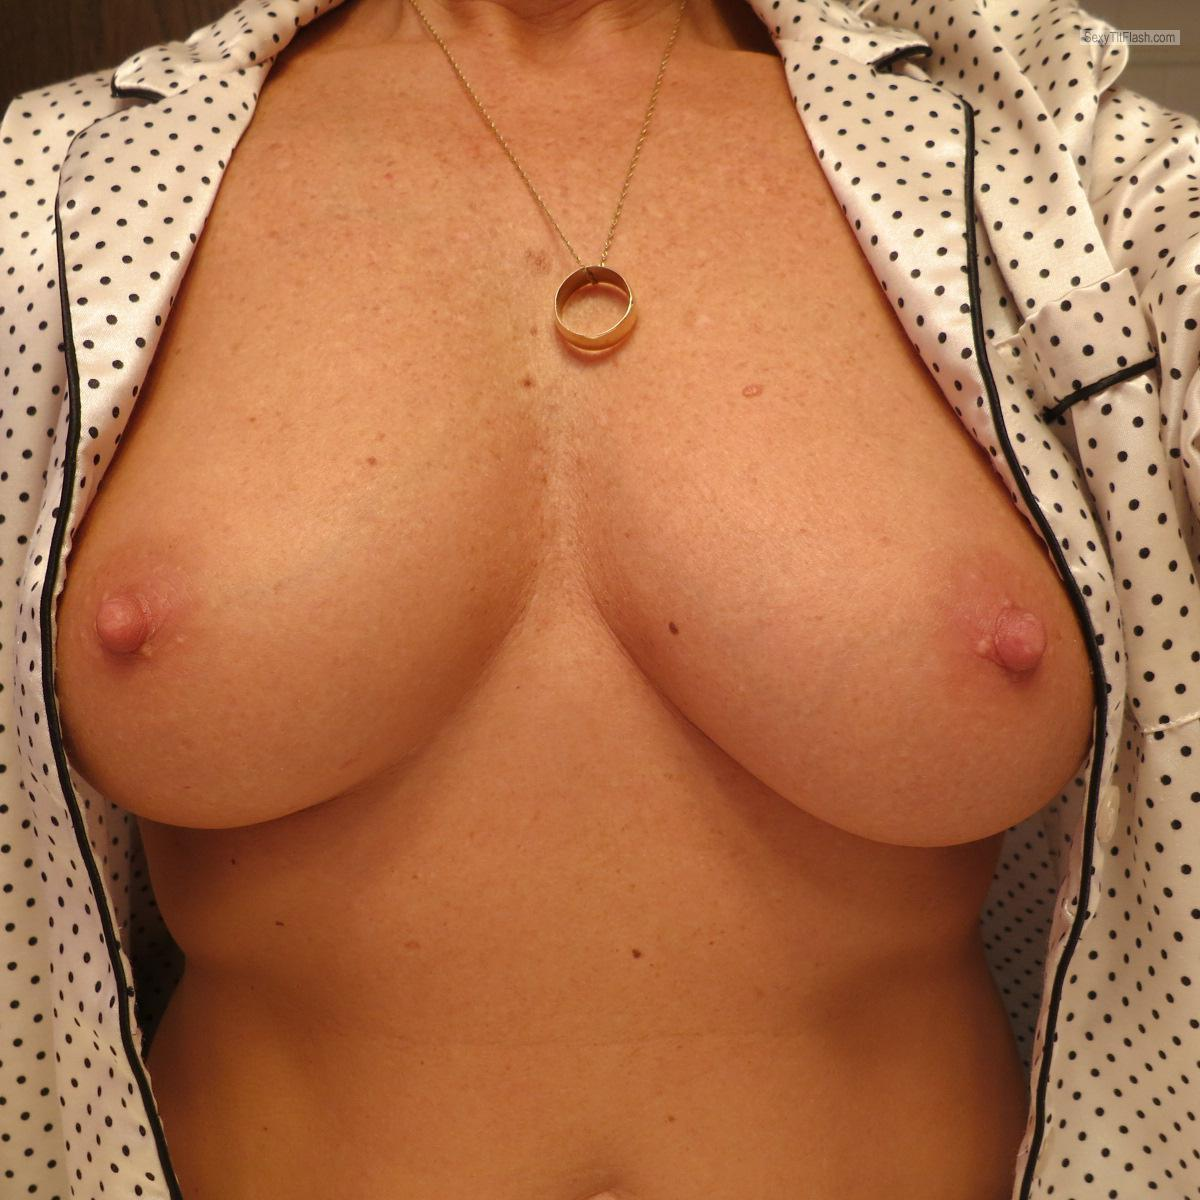 Medium Tits Of My Wife My Sexy Wife